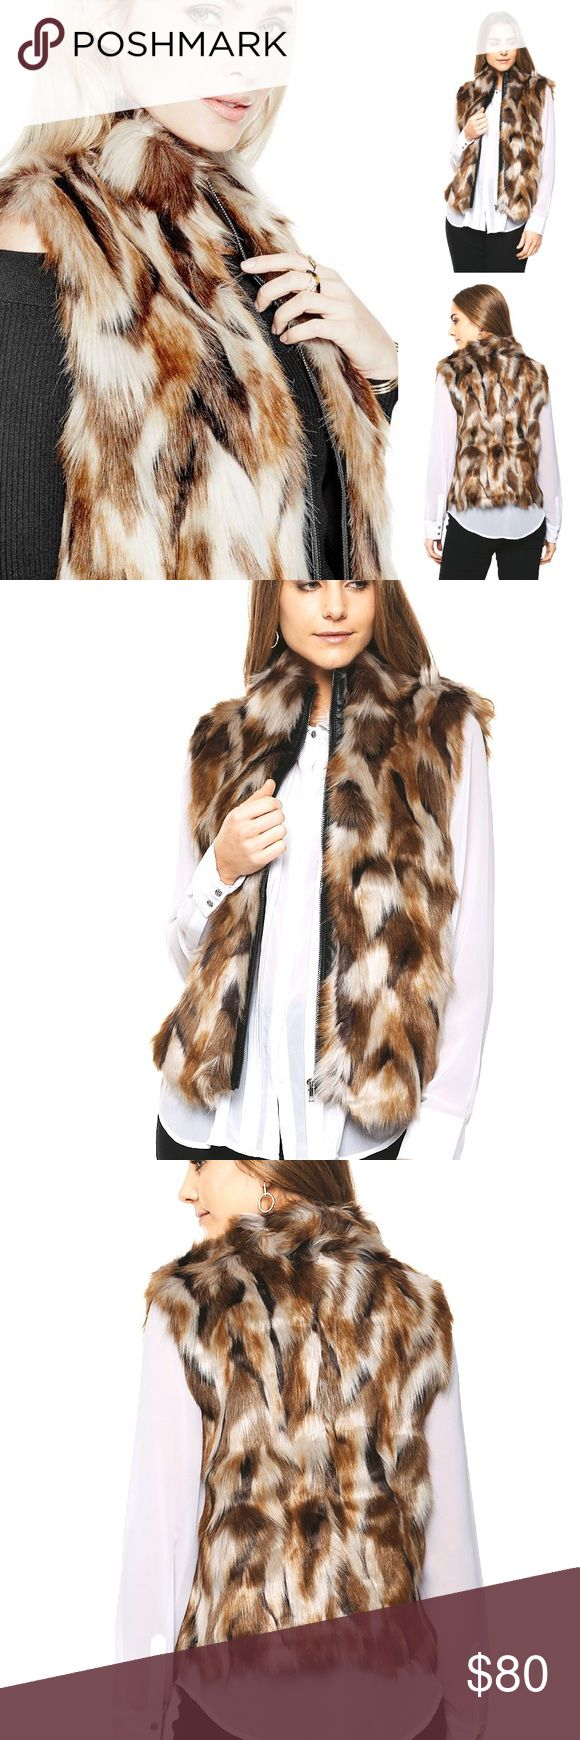 NWT Guess LA Kielo Faux Fur Vest ⭐️⭐️Next Day Ship⭐️New With Tags⭐️⭐️ FREE SHIPPING on bundles $50➕ Multicolor faux-fur vest with stand collar and faux-leather front placket. Zipper closure.  Shell: 80% Acrylic, 20% Modacrylic. Lining: 100% Polyester. Dry clean Color Camel Multi Guess Jackets & Coats Vests